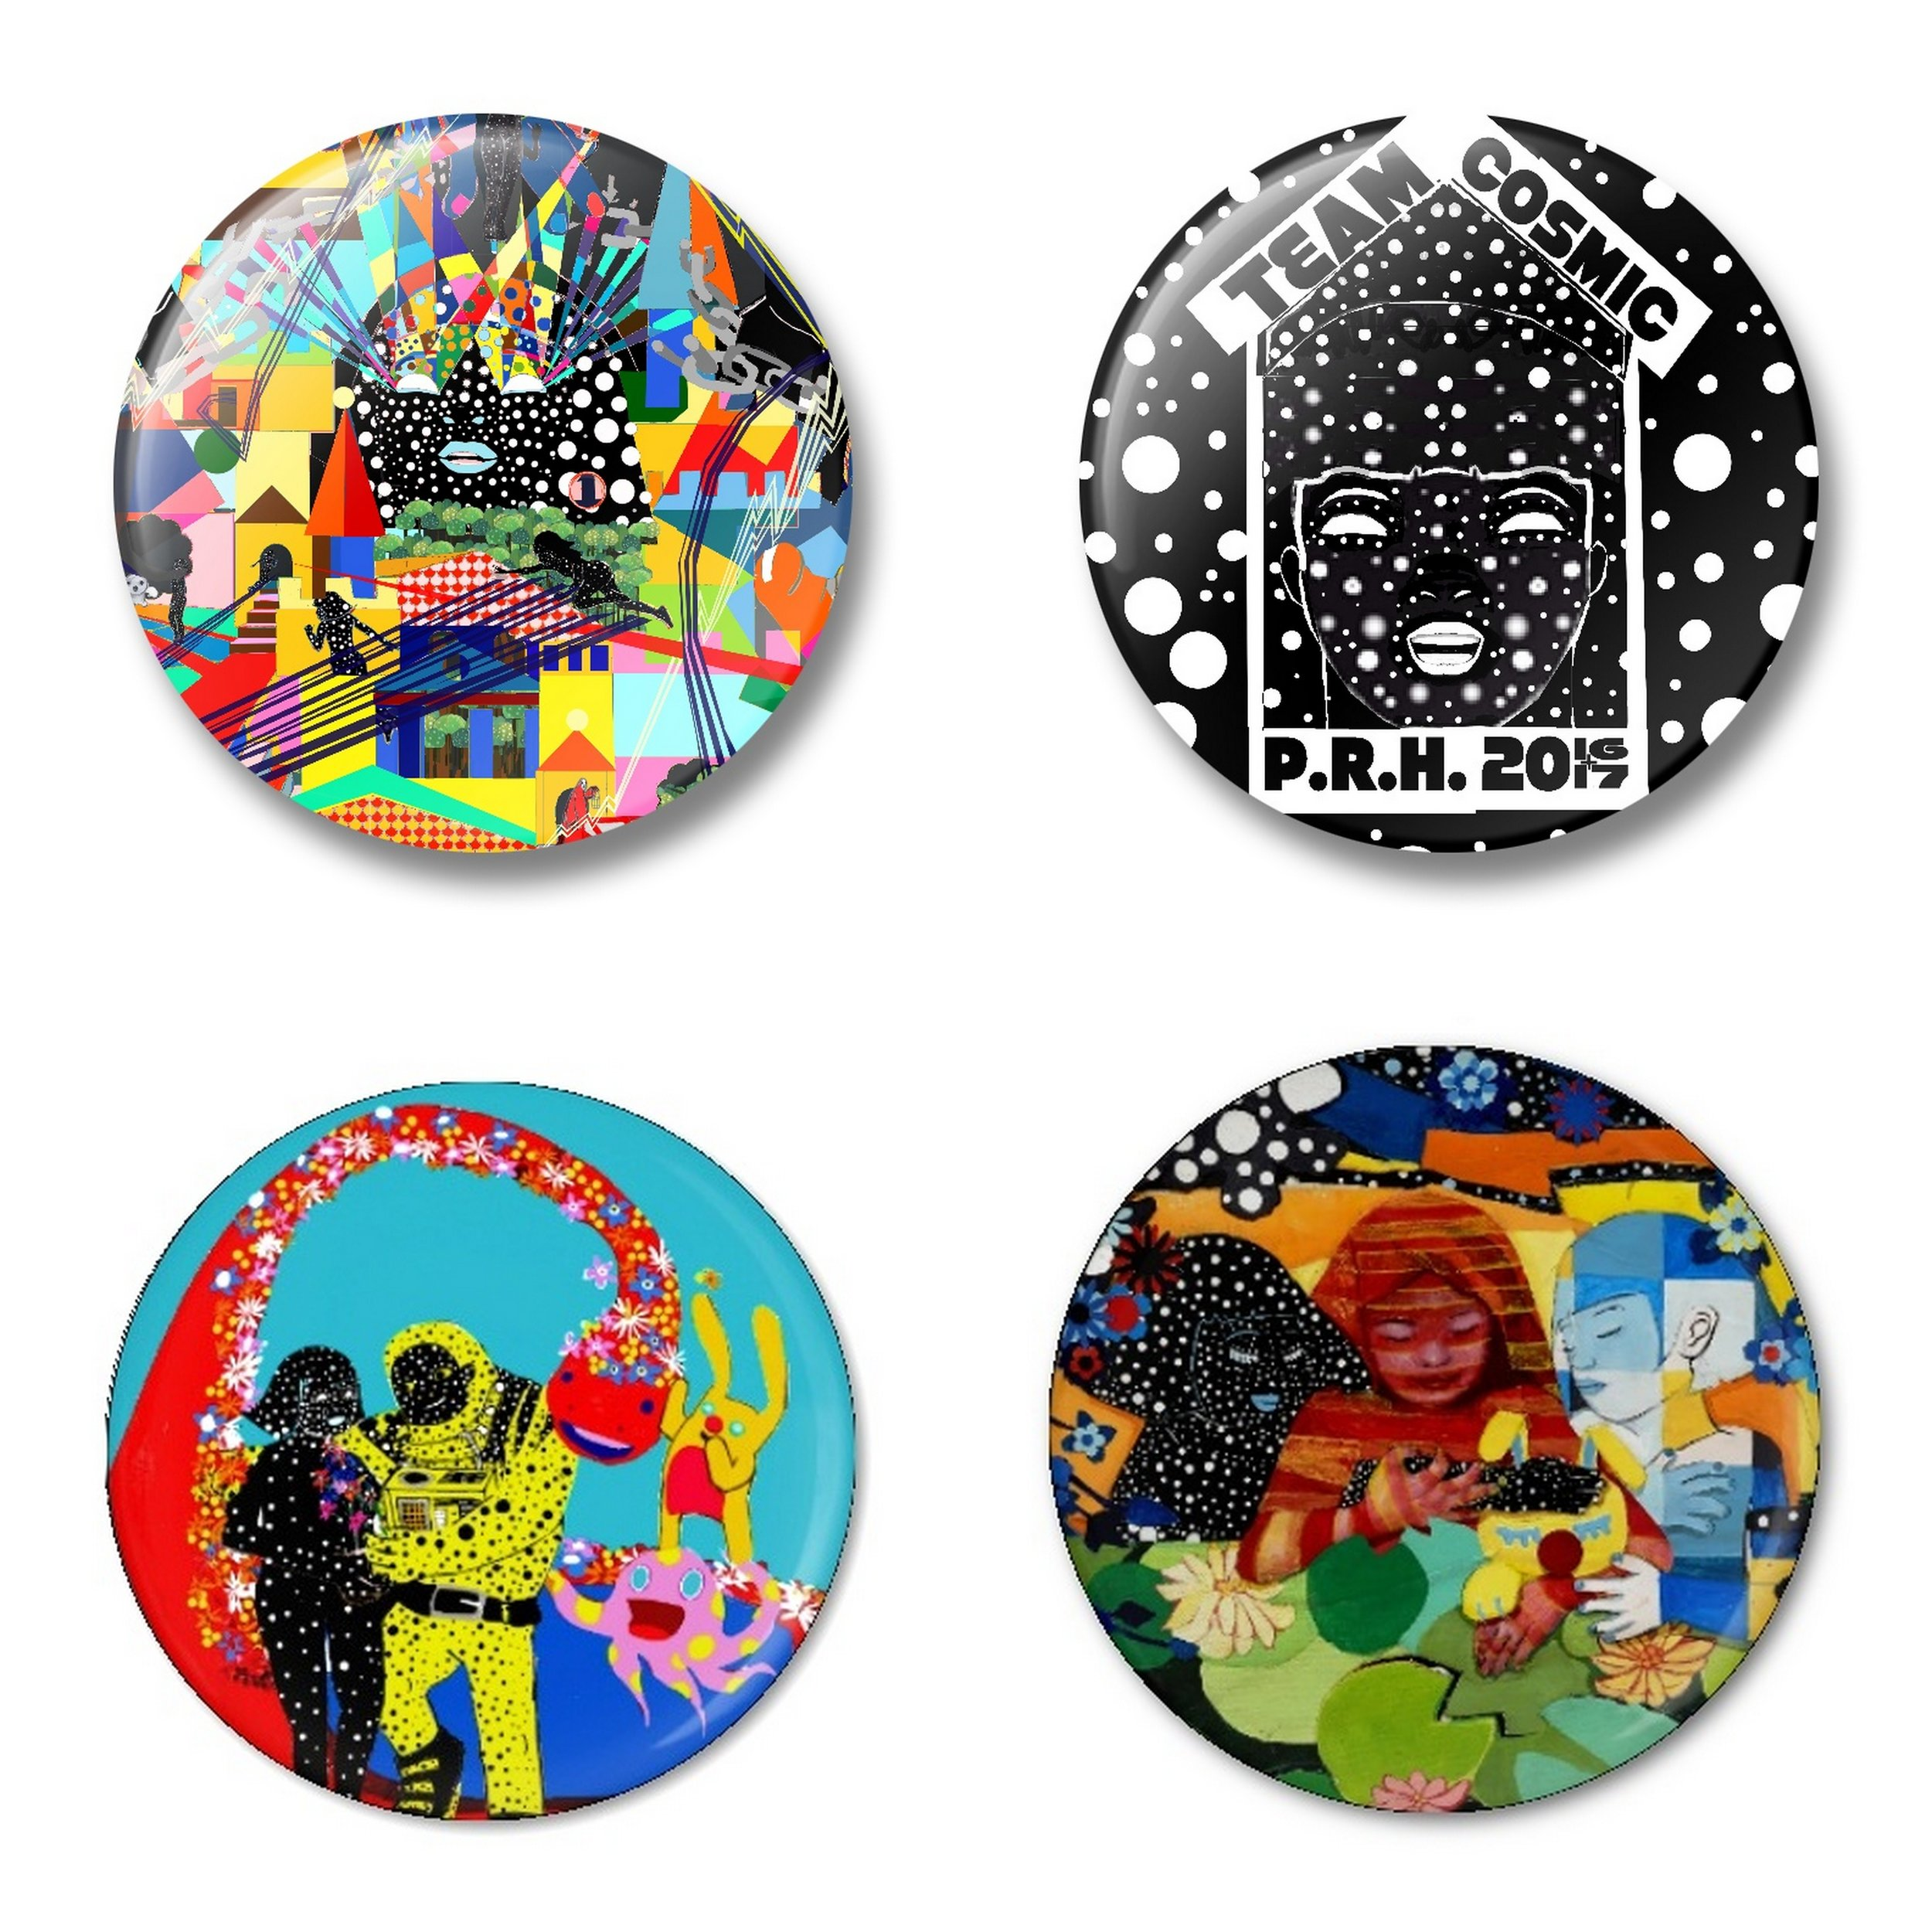 PINS - Pins created to celebrate exhibitions and projects